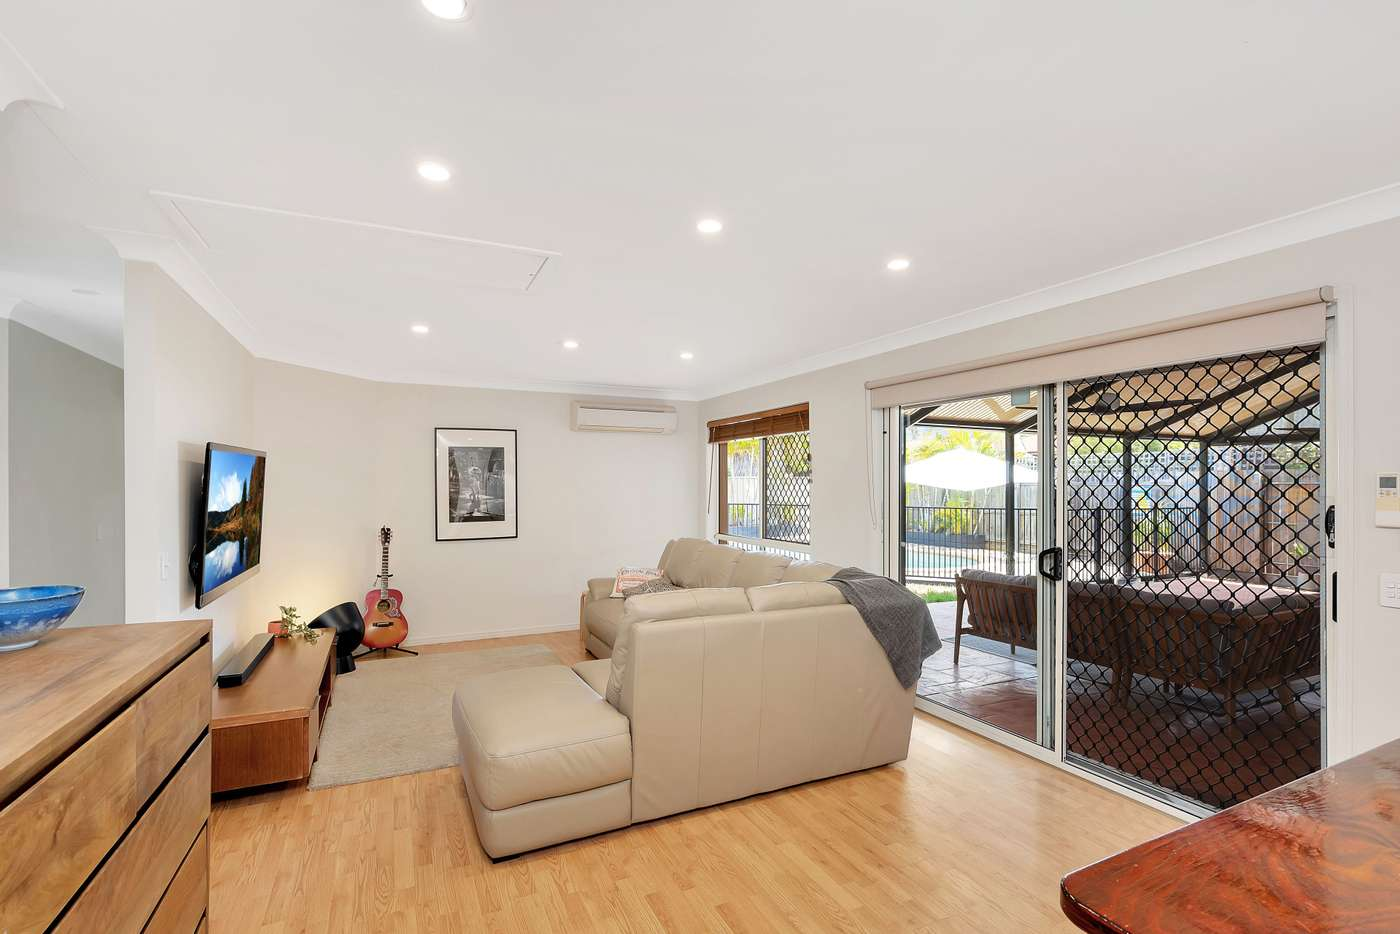 Sixth view of Homely house listing, 1 Ardath Close, Parkwood QLD 4214